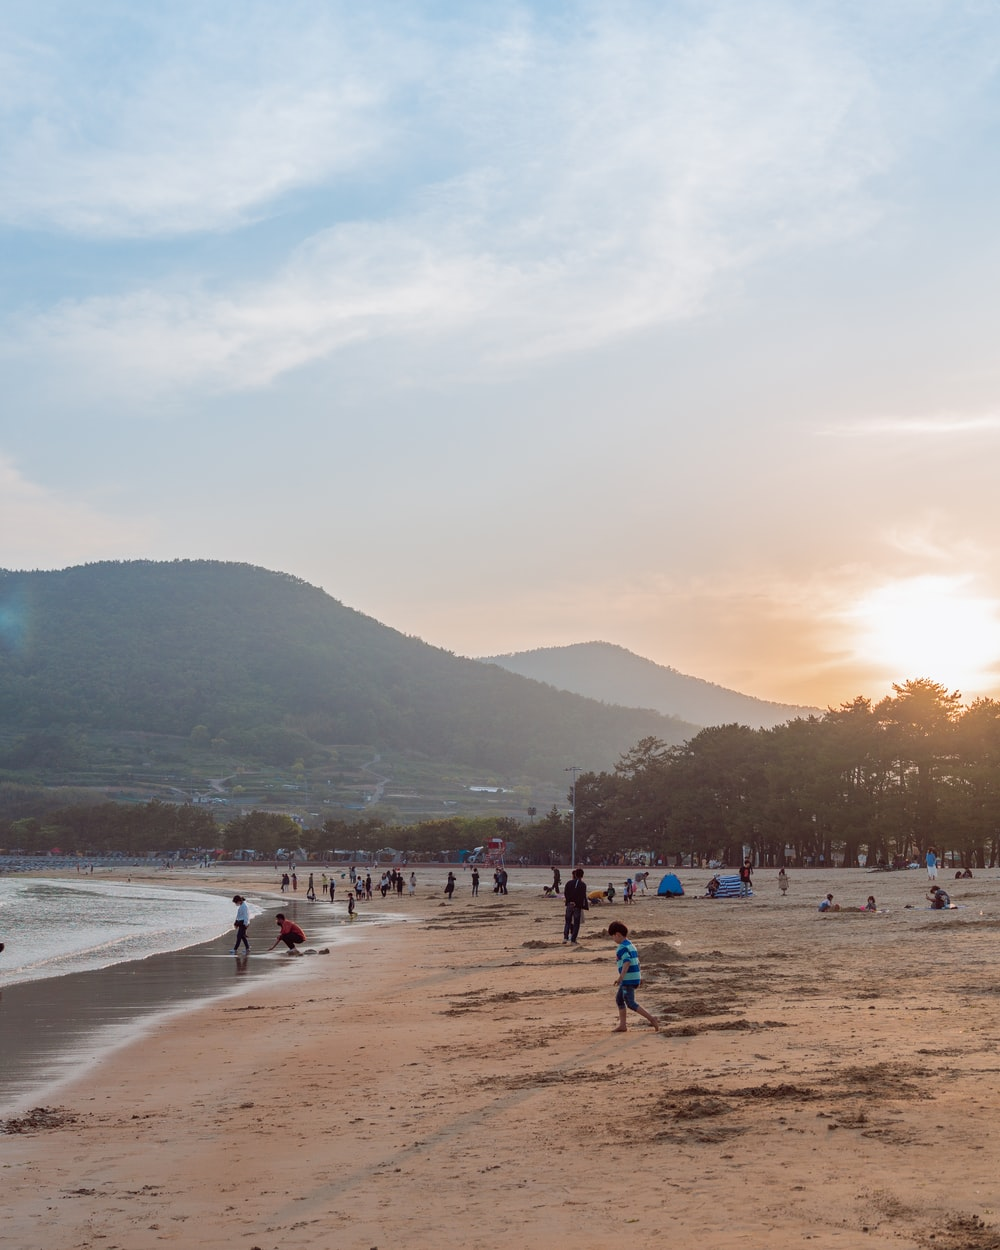 people on beach during sunset